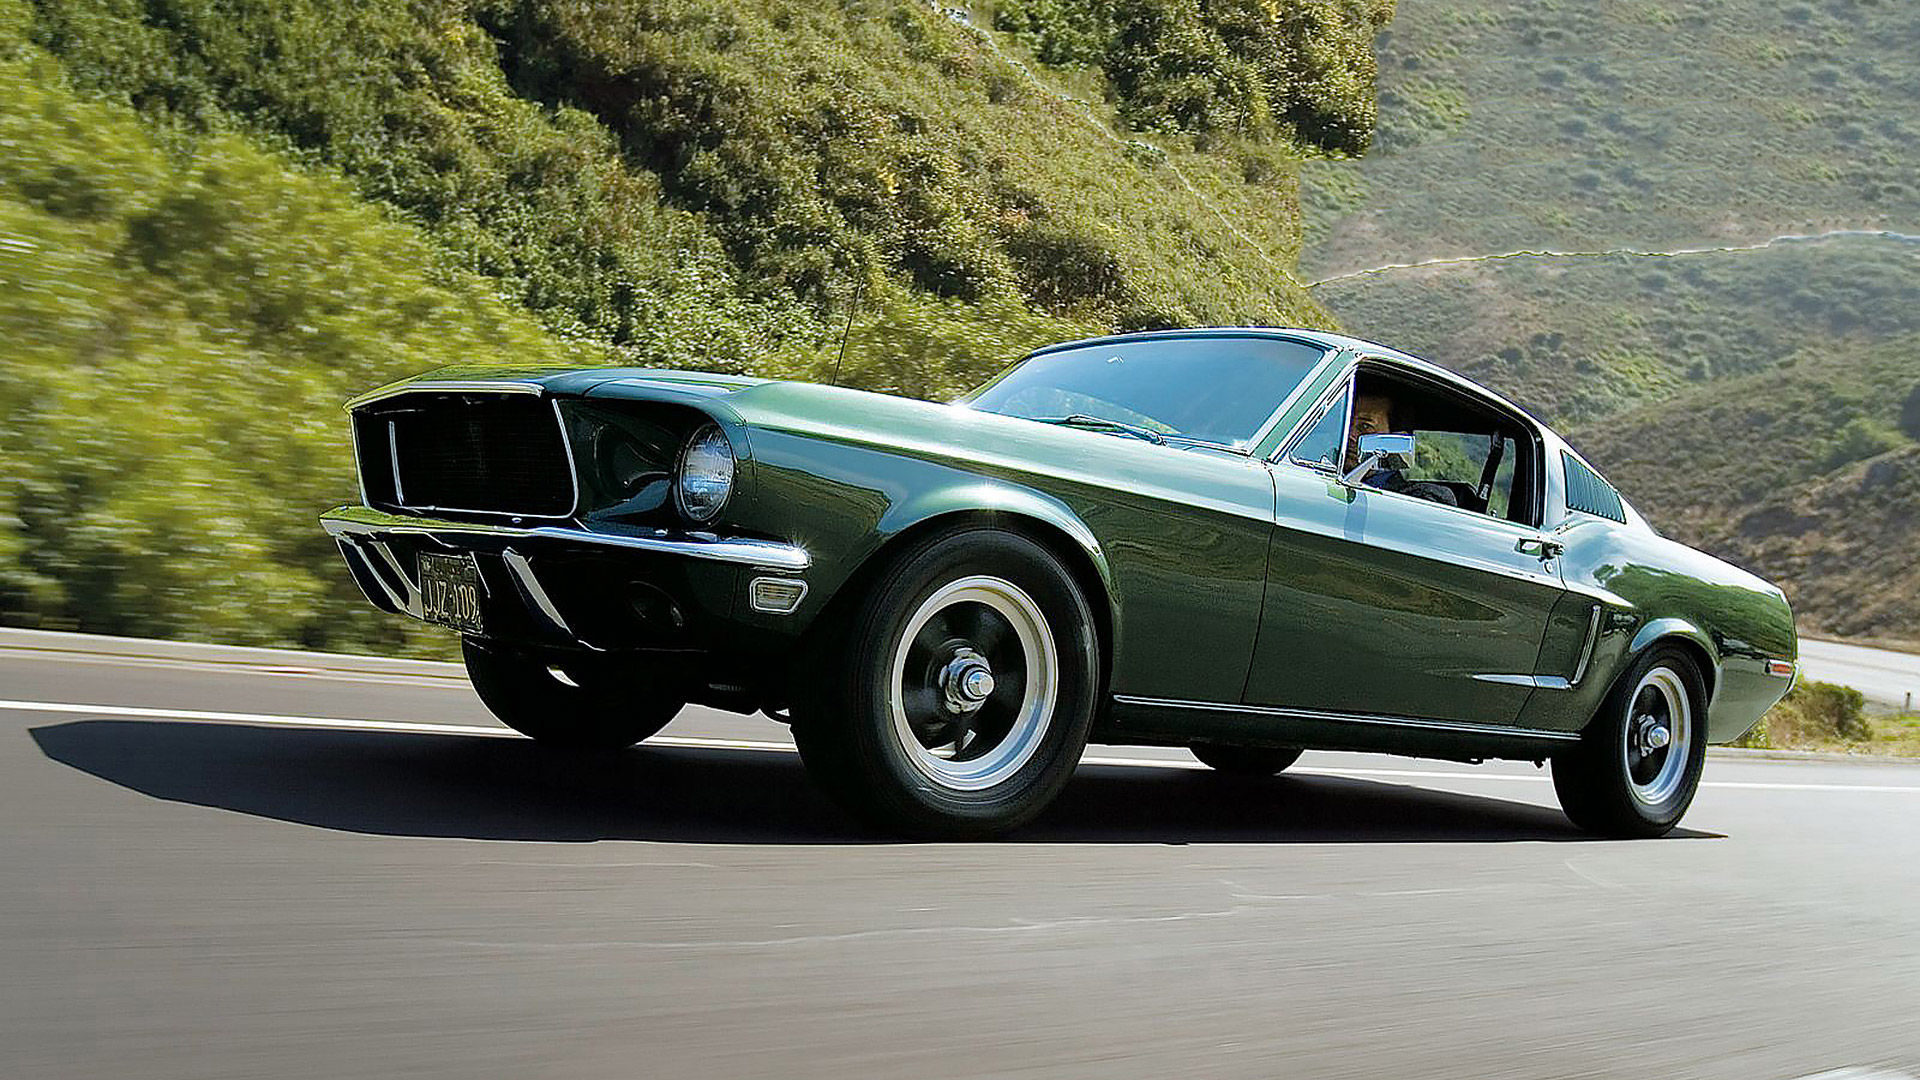 1968 Ford Mustang GT 390